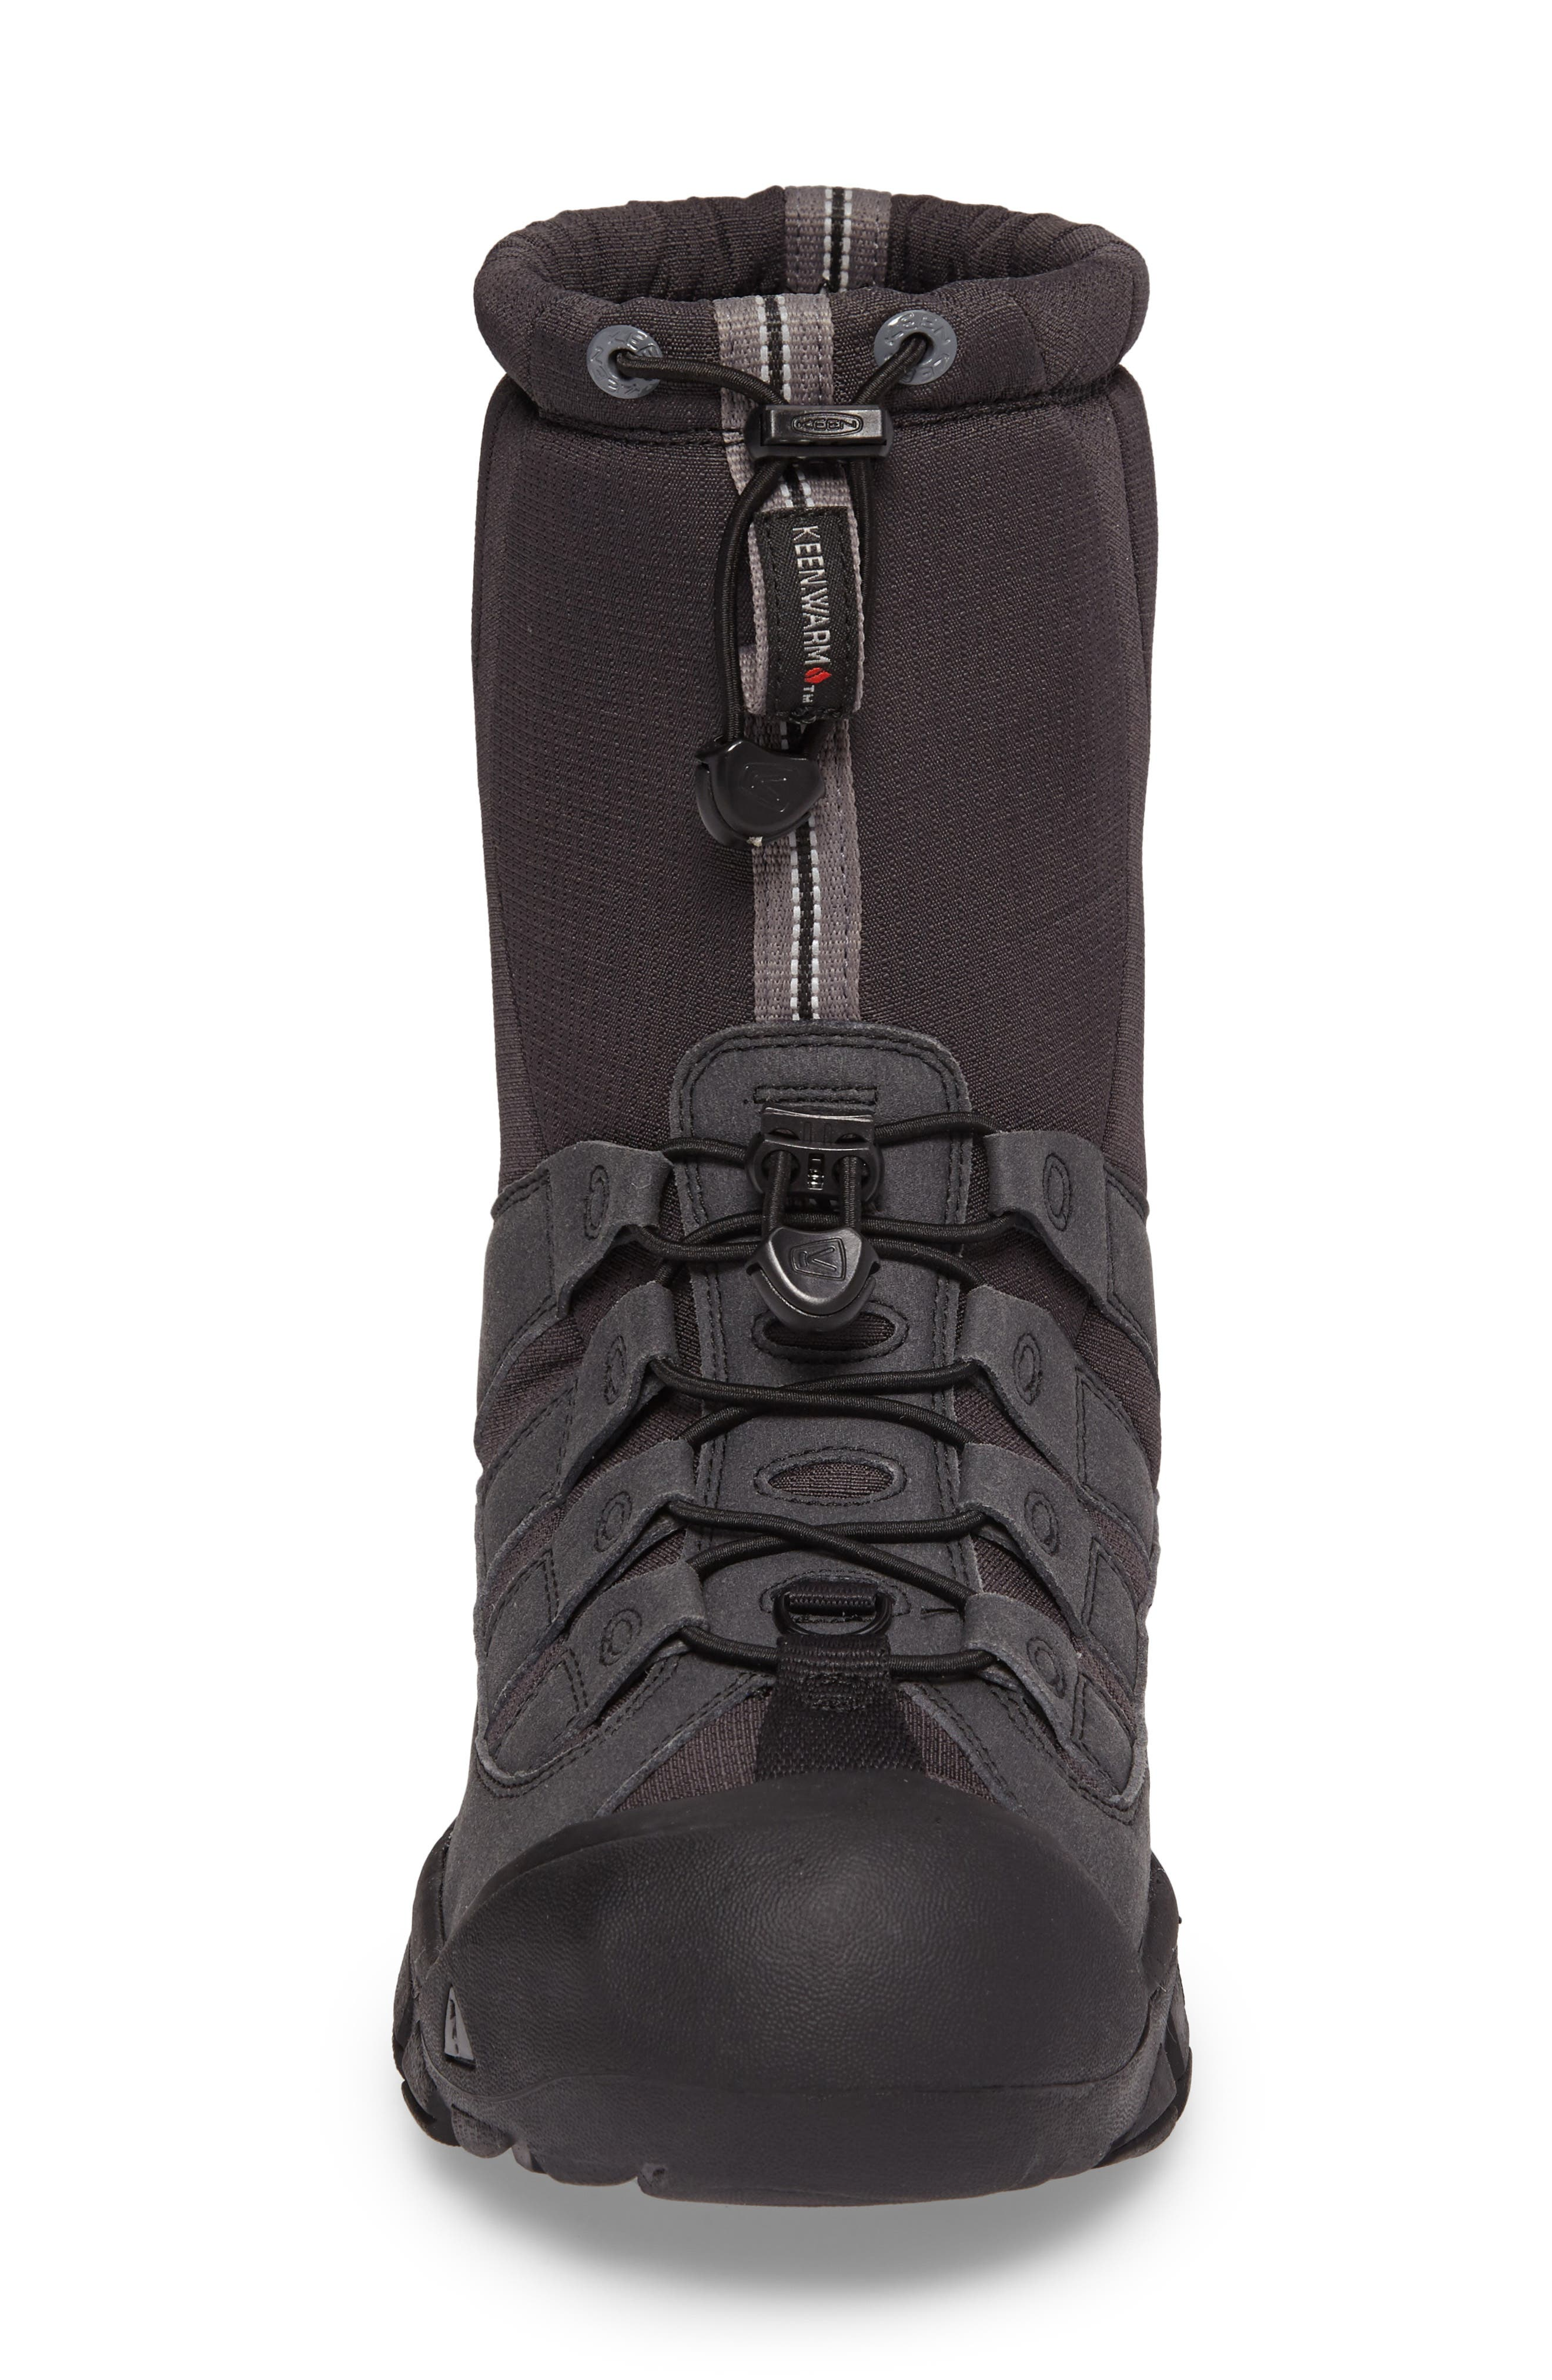 Winterport II Waterproof Insulated Snow Boot,                             Alternate thumbnail 4, color,                             001